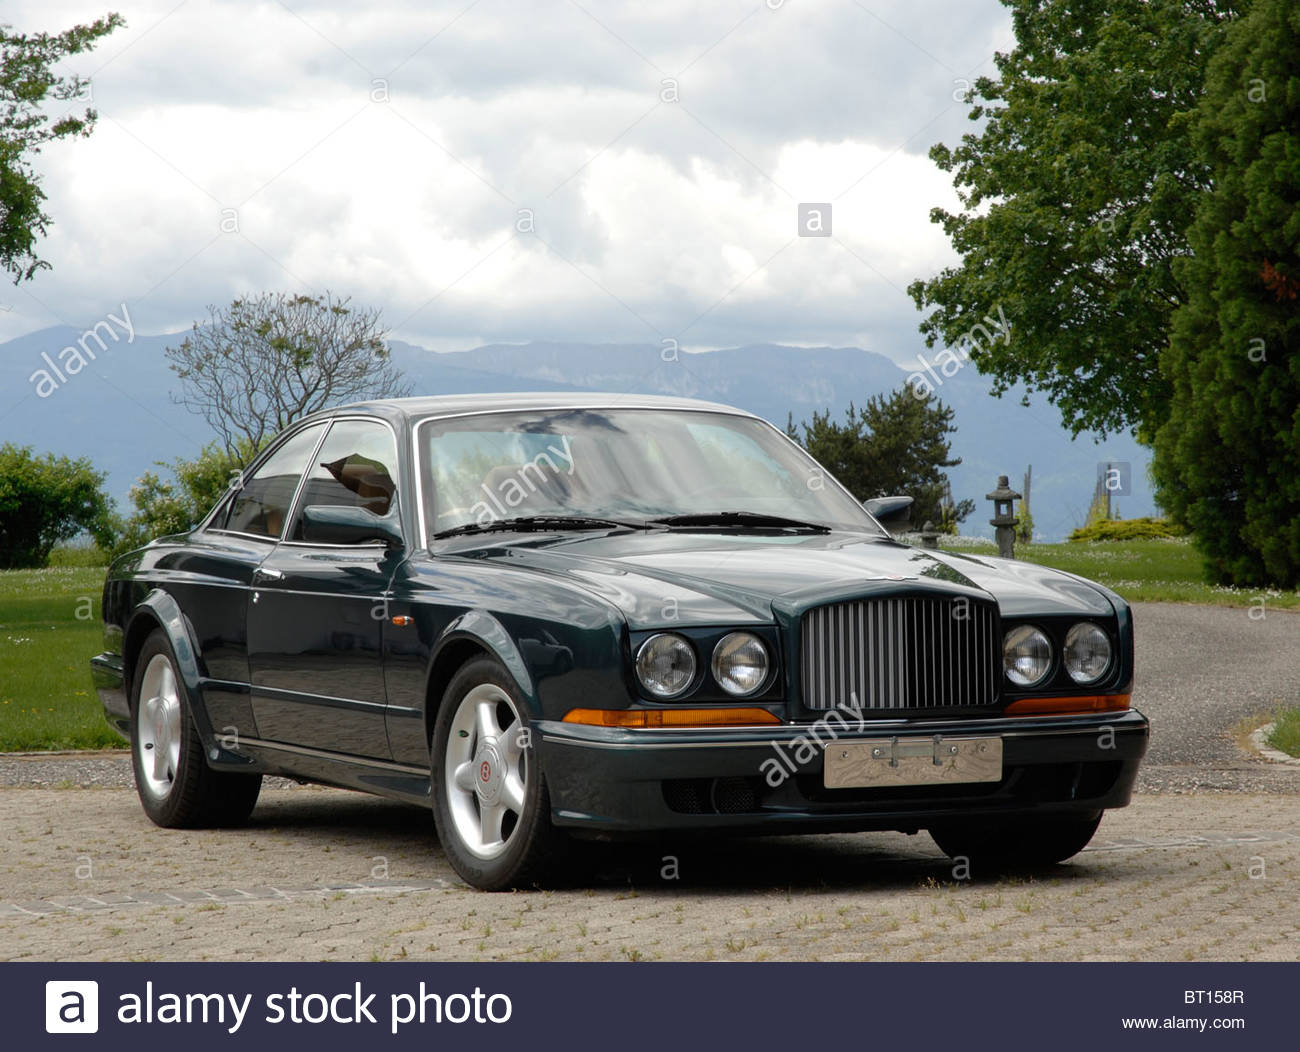 Bentley Continental T 1998 Stockbild